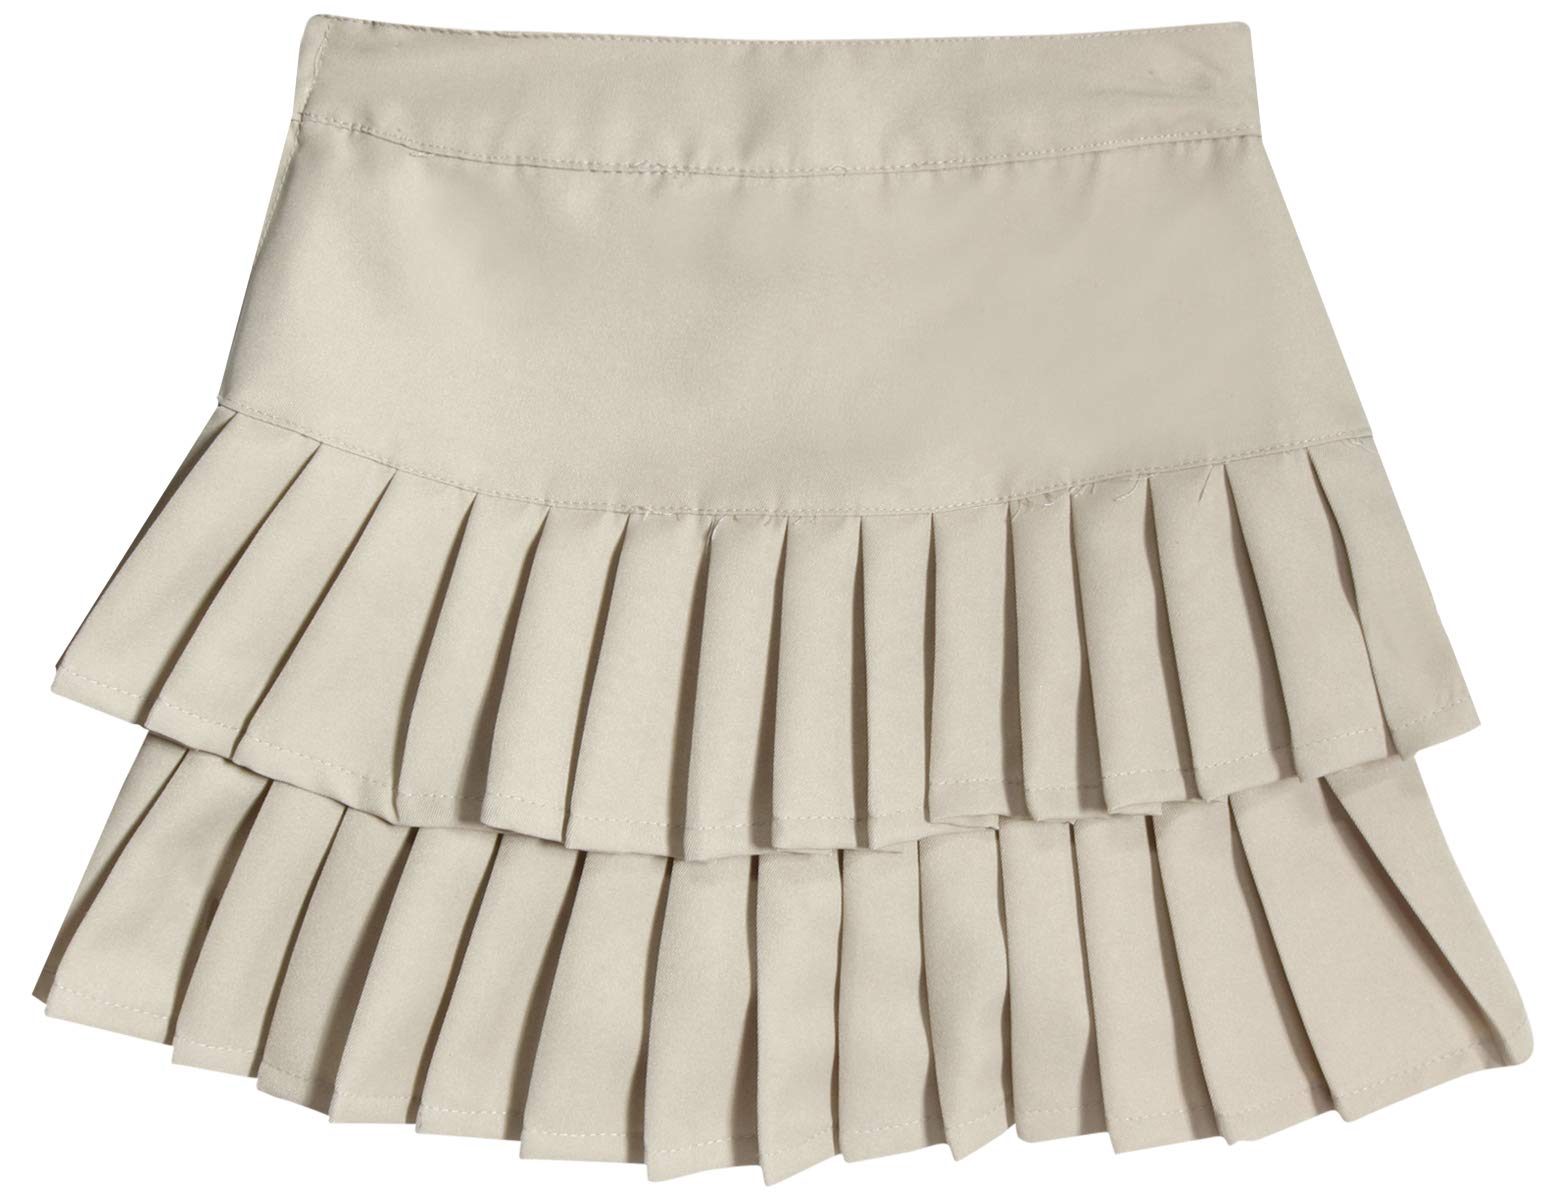 'Beverly Hills Polo Club Girls School Uniform Belted Low Pleat Scooter, Khaki, Size 10' by Unknown (Image #4)